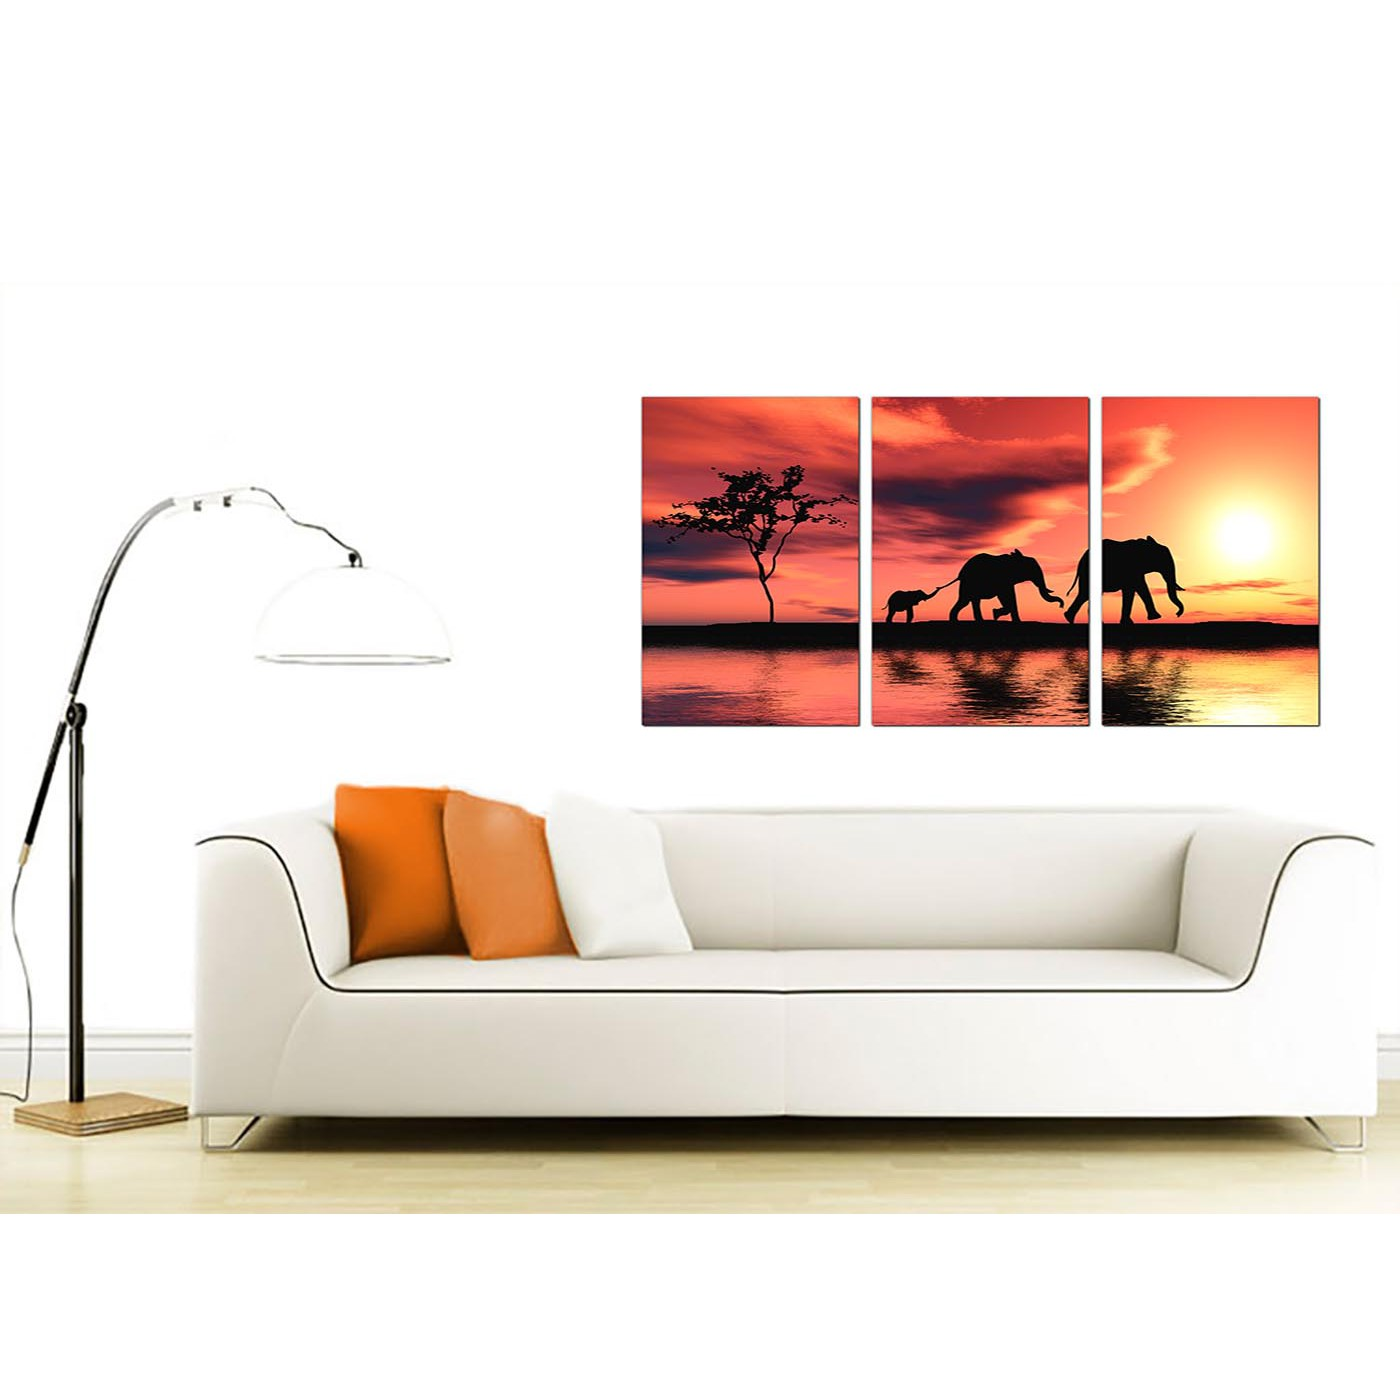 Elephants Canvas Prints Set Of 3 For Your Living Room